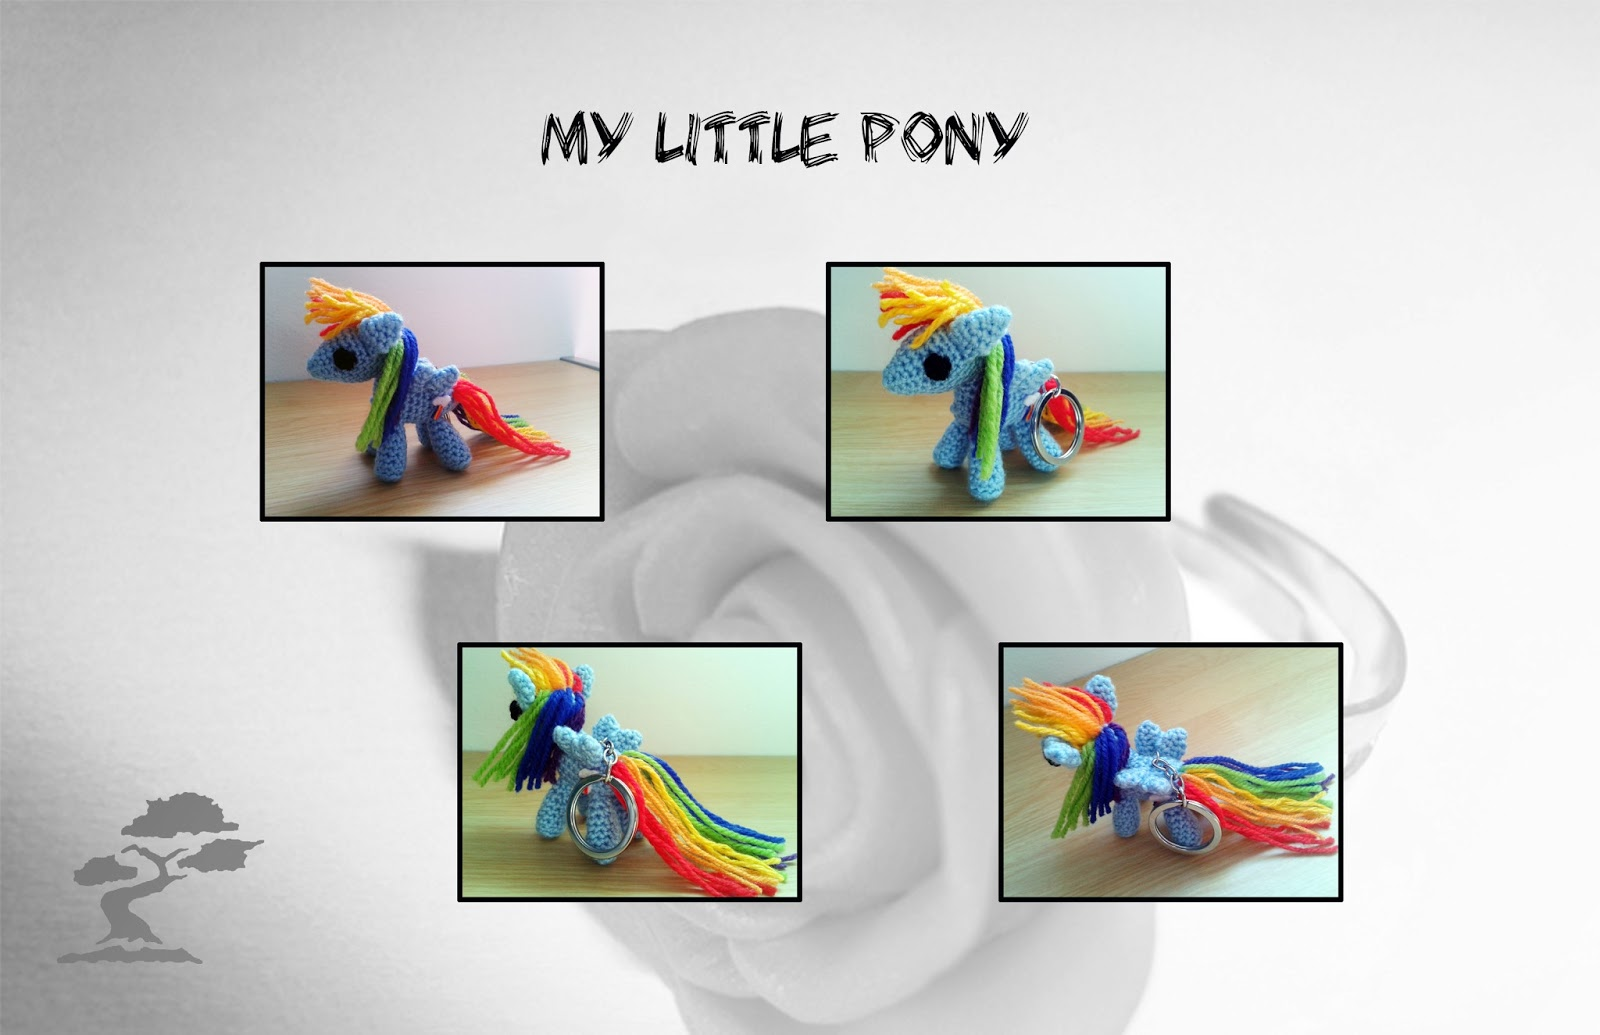 Semillas de bonsai: Llavero my little pony